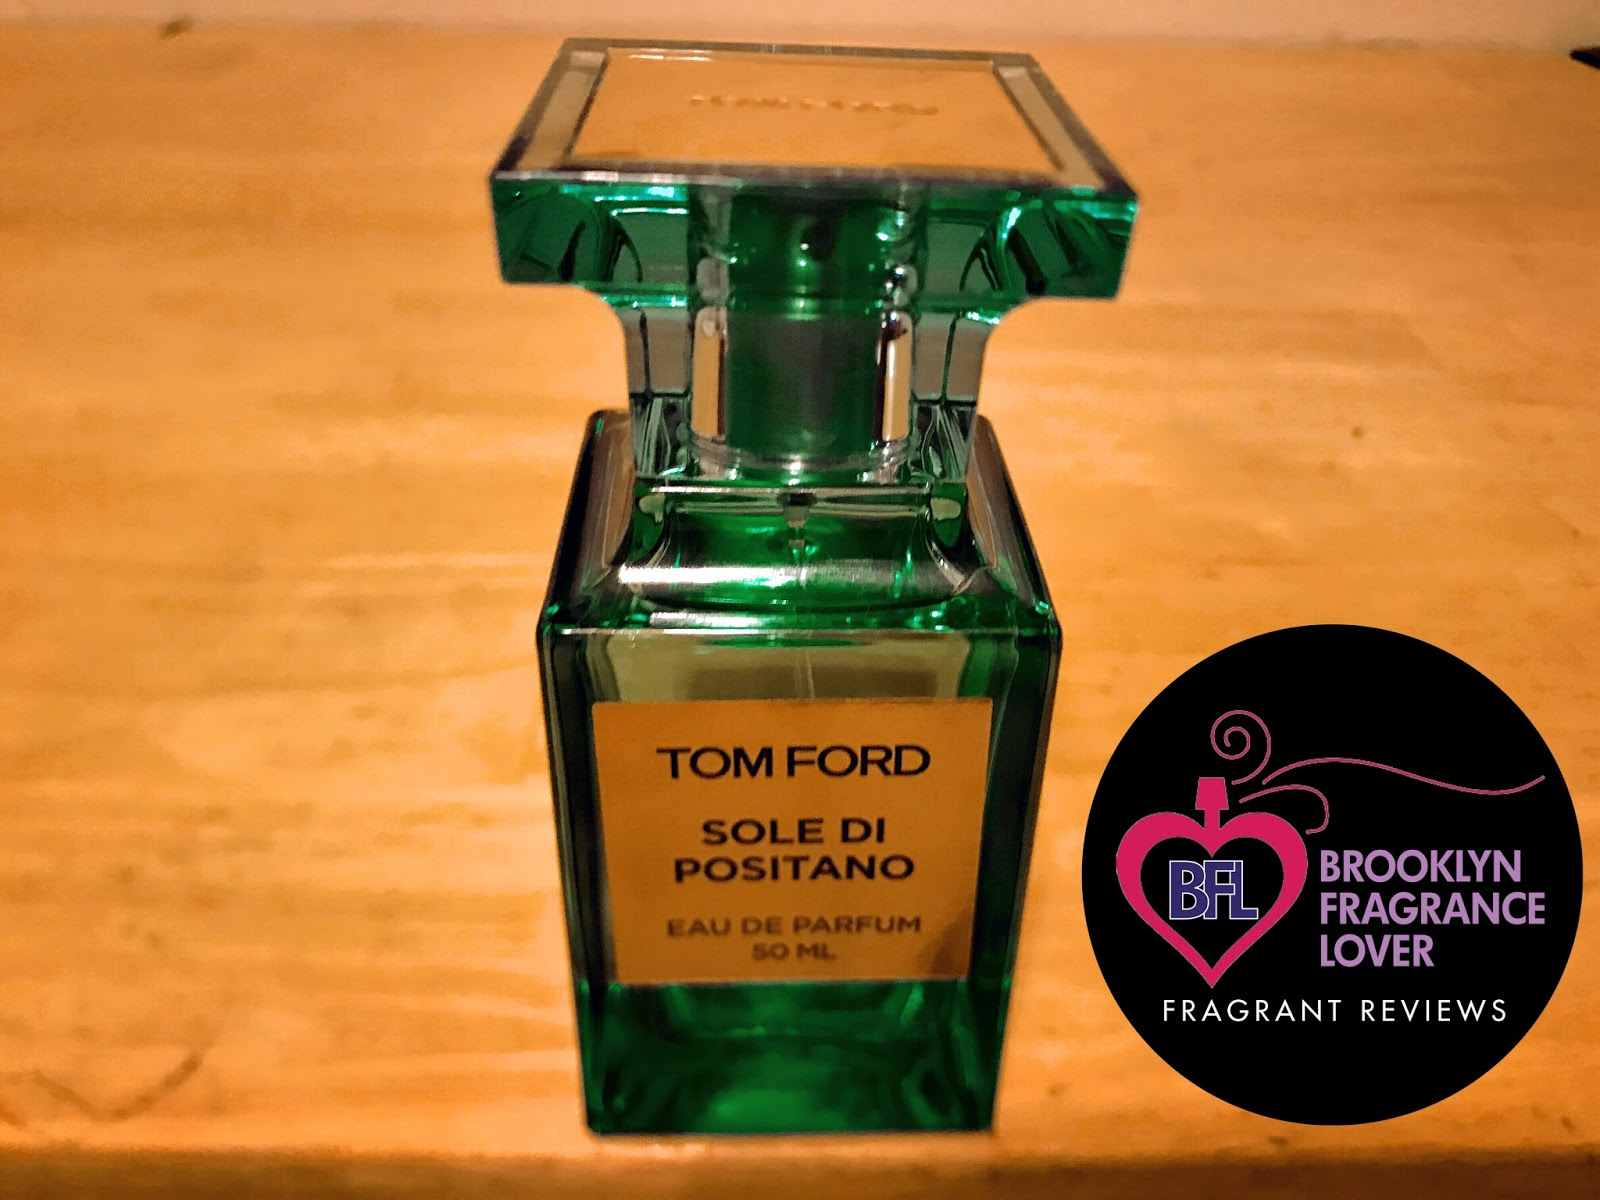 Brooklyn Fragrance Lover NEW Tom Ford Private Blend Sole di